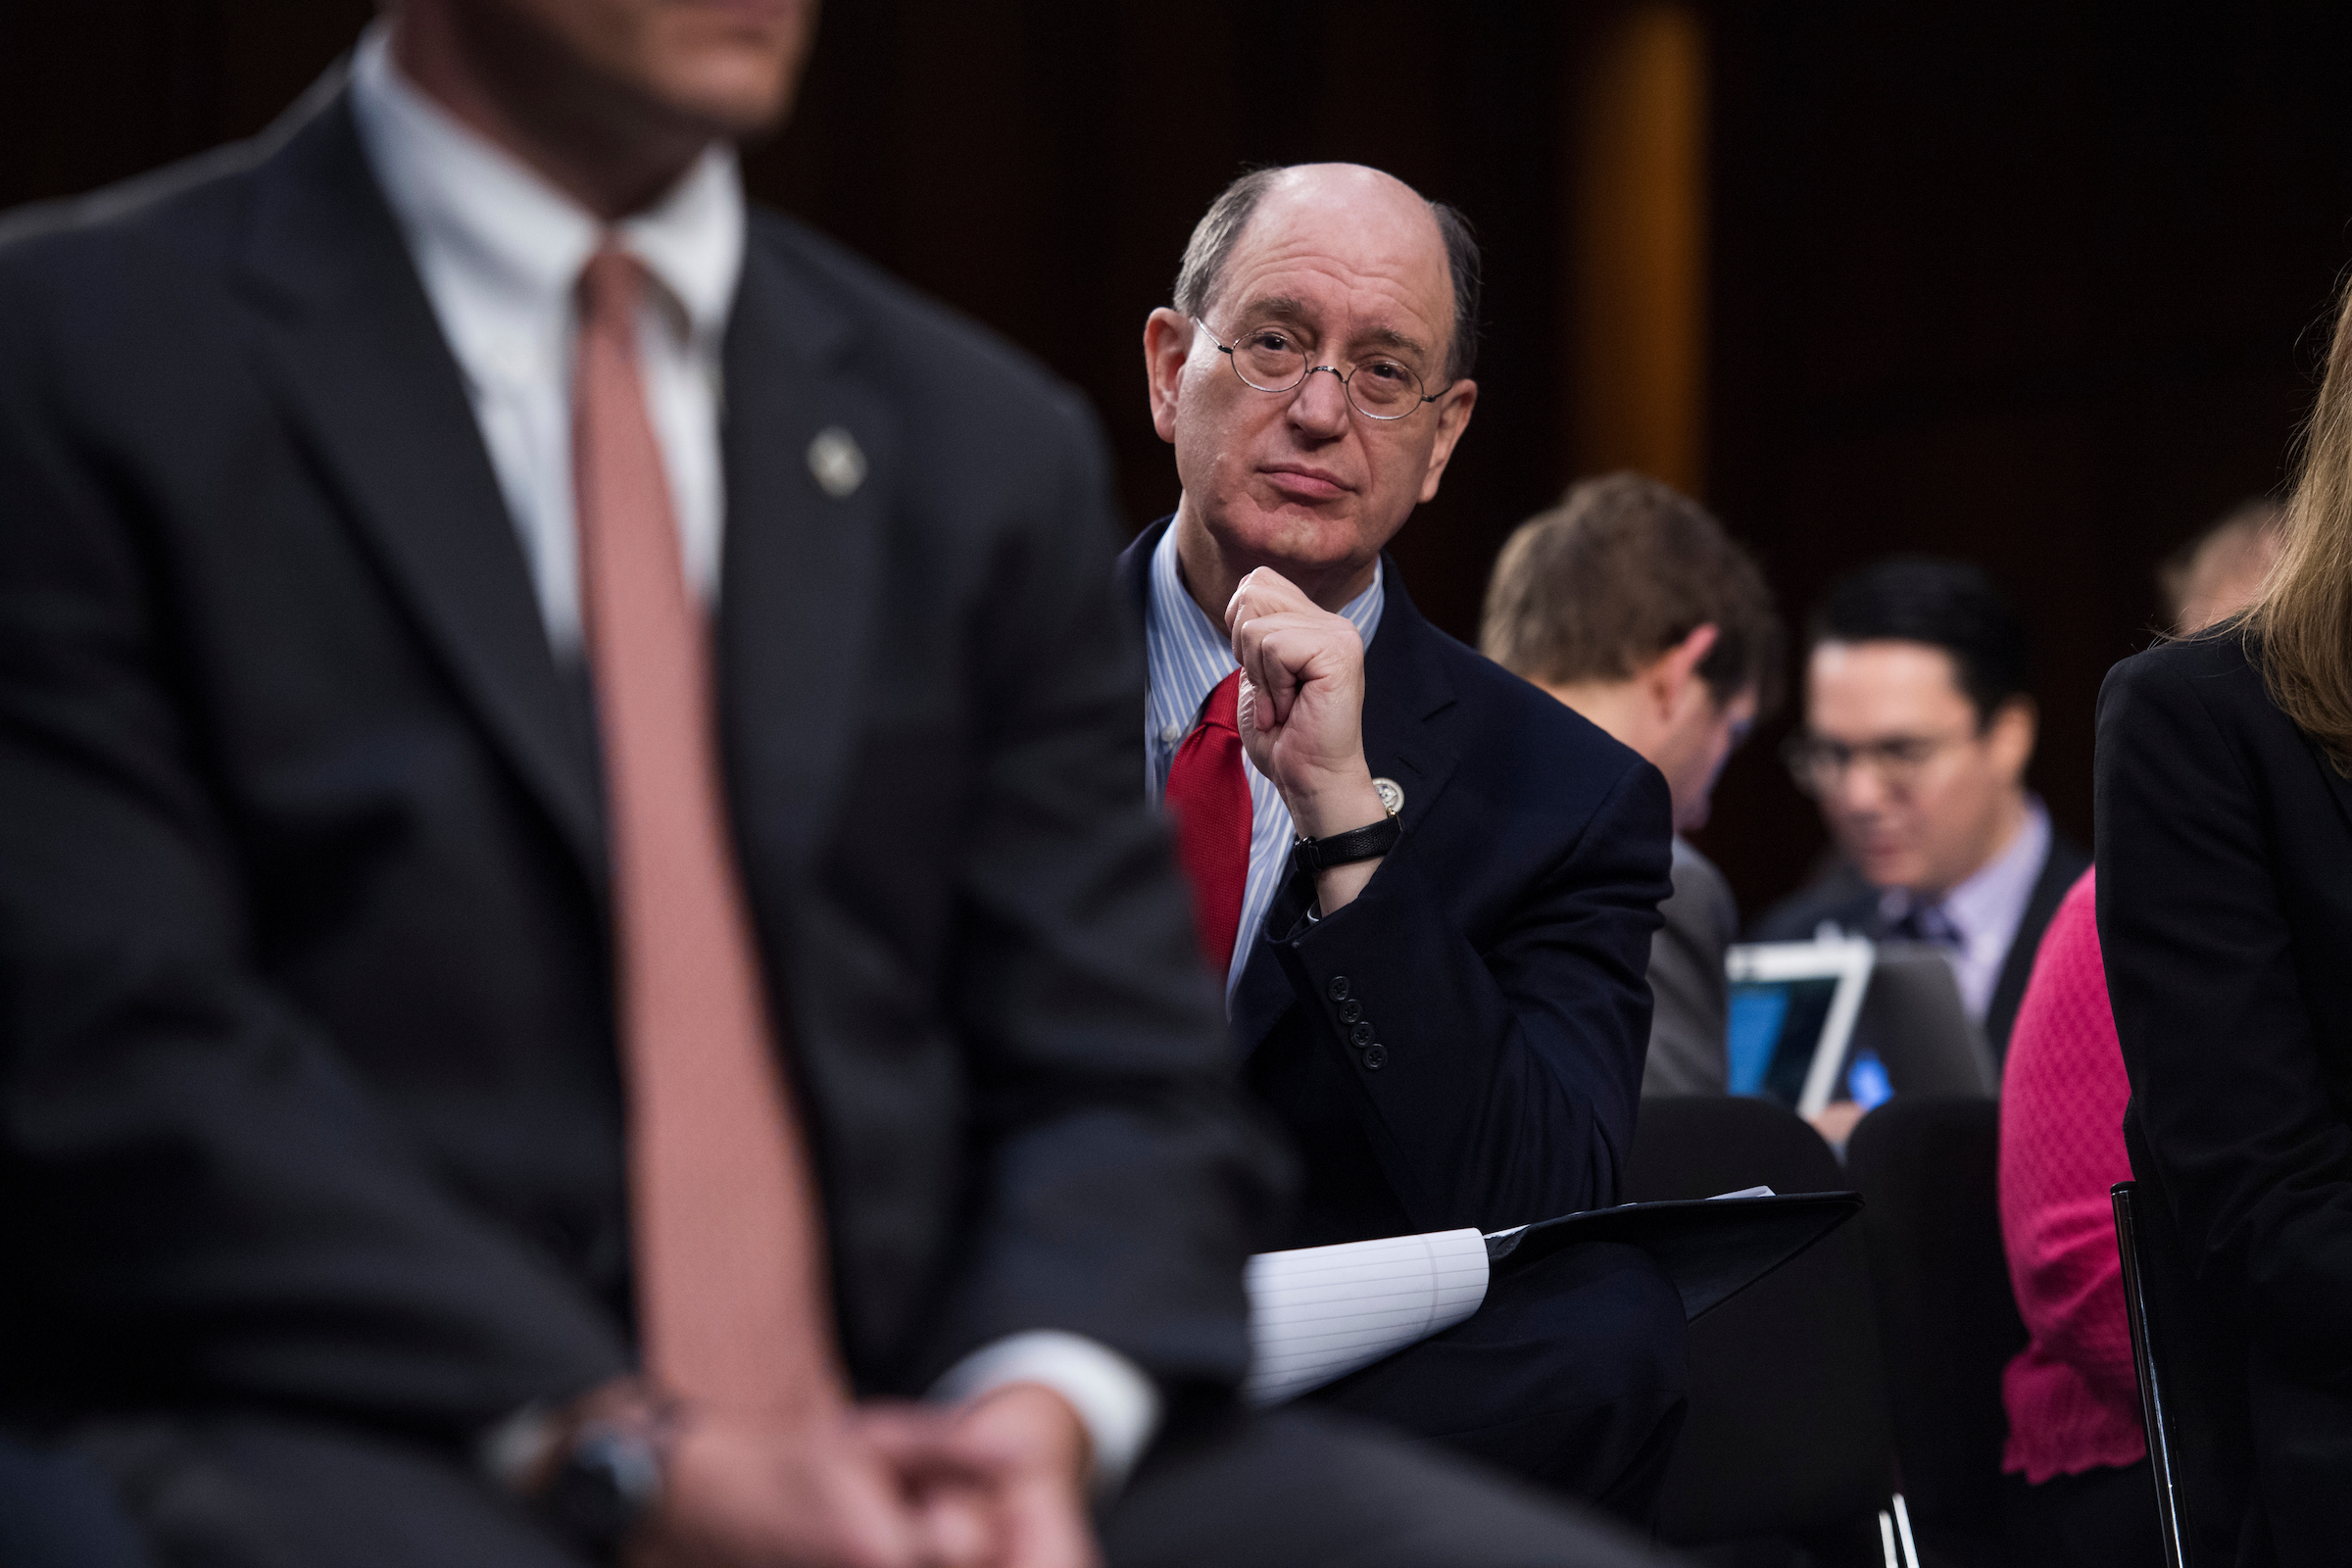 California Rep. Brad Sherman had a prime seat behind Comey at Thursday's hearing. (Tom Williams/CQ Roll Call)